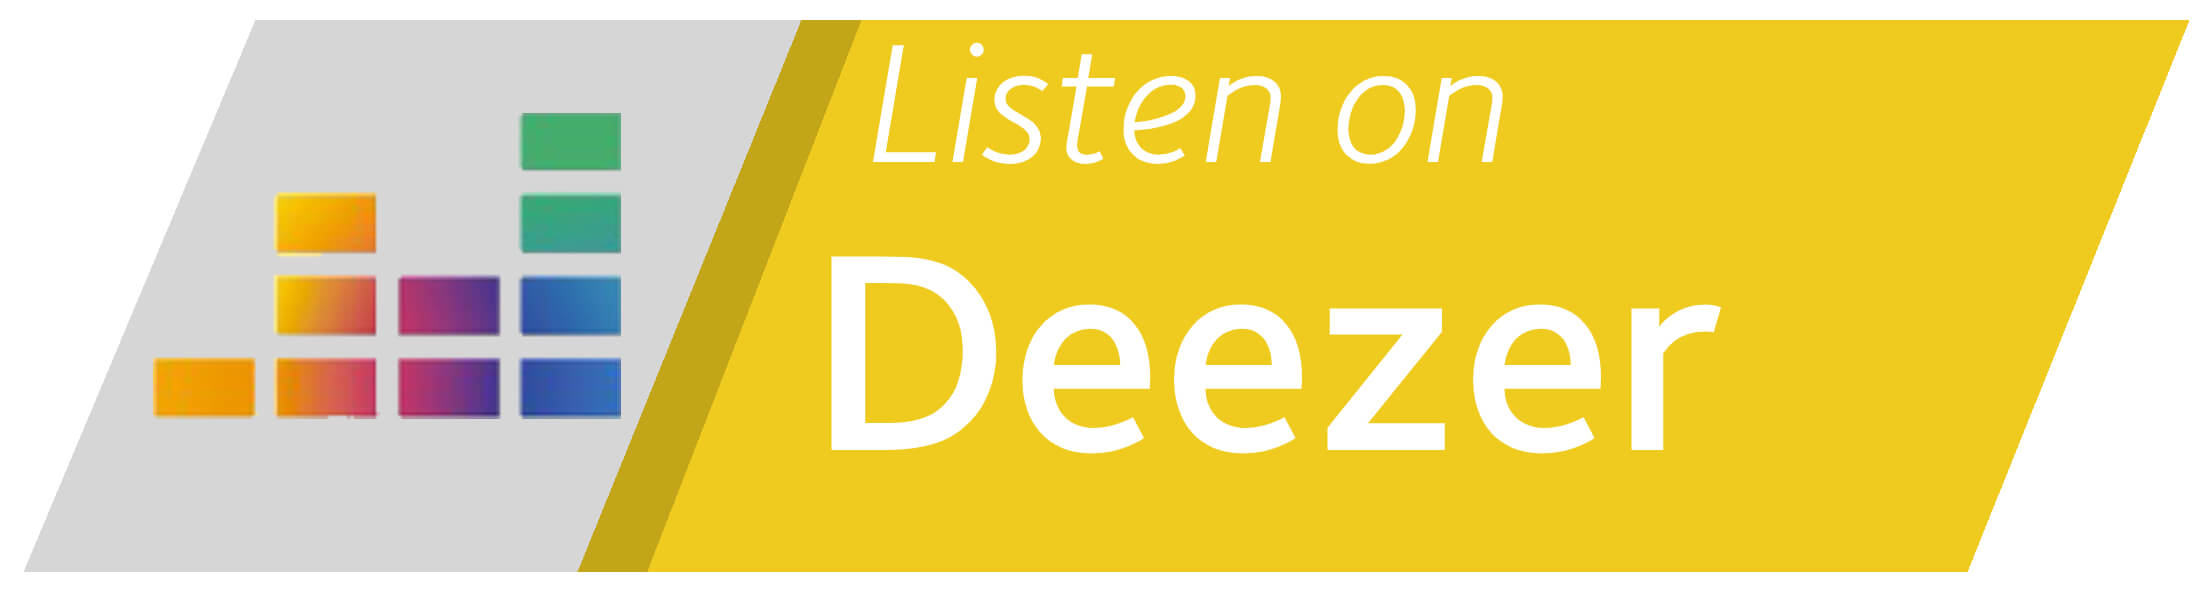 Podcast for Entrepreneurs on Deezer